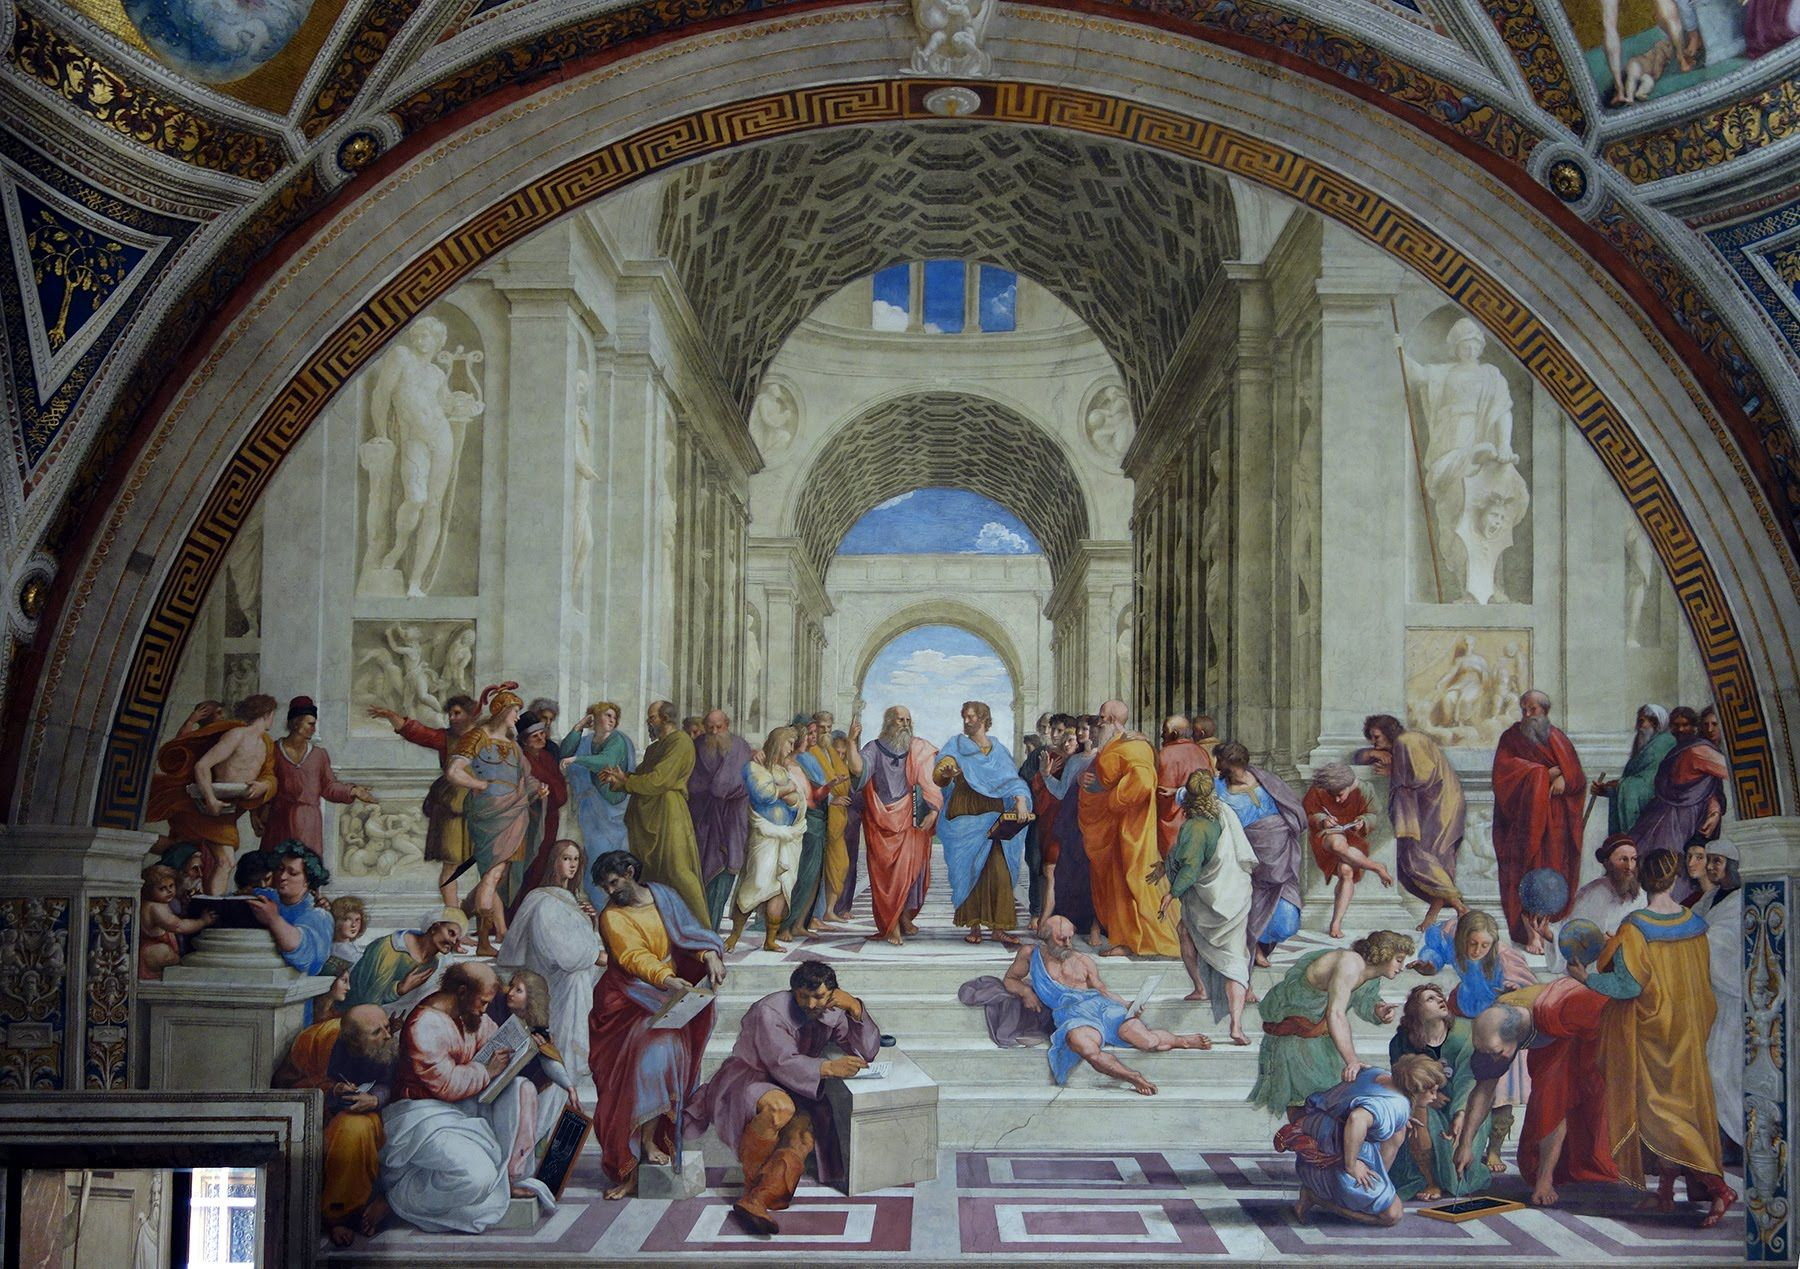 Raphael The School Of Athens And Disputa 1508 11Kahn Academy Italian Renaissance